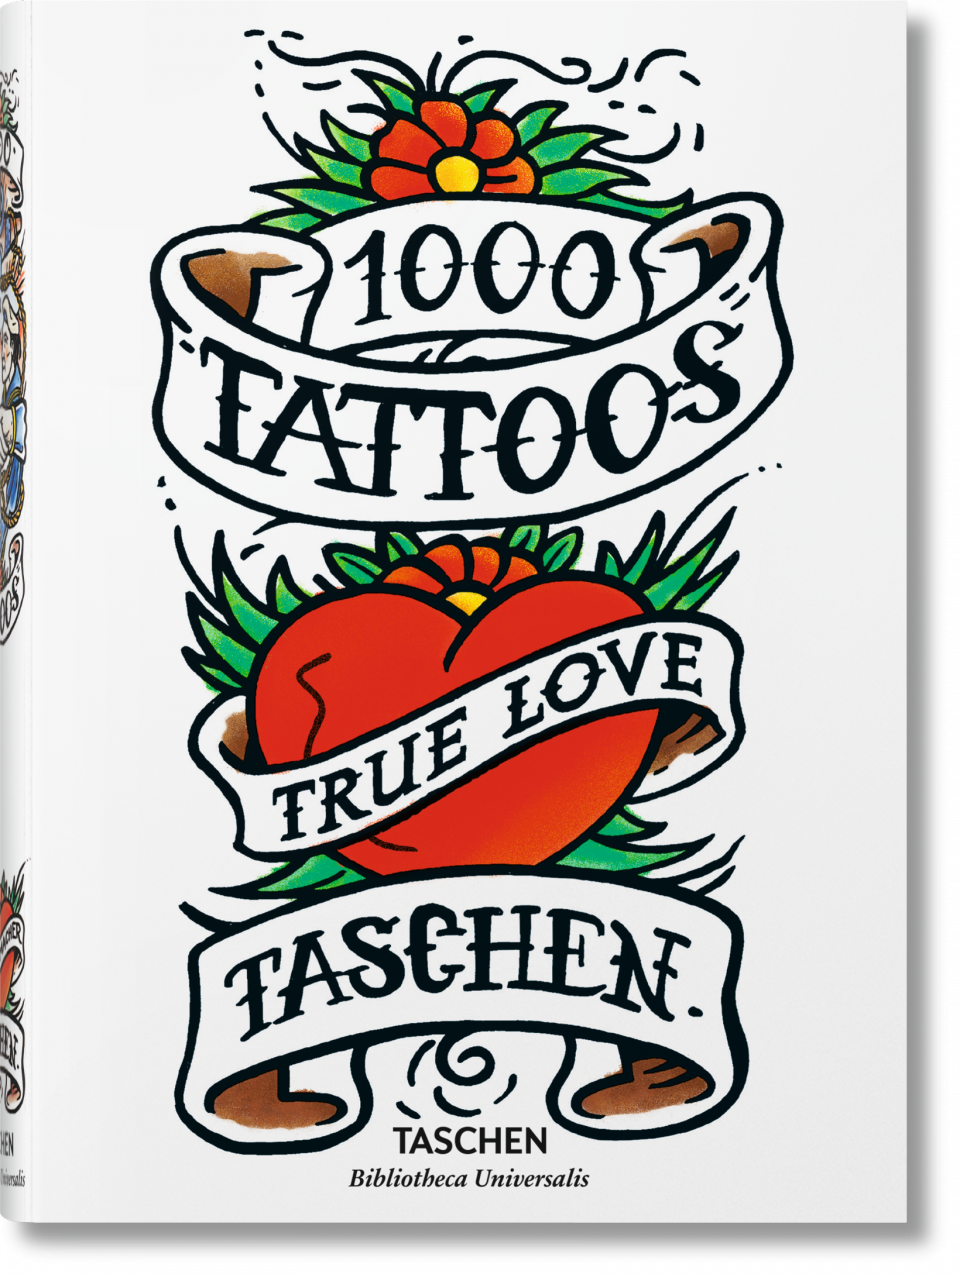 1000 Tattoos. US$ 20. Multilingual Edition: English, French, German